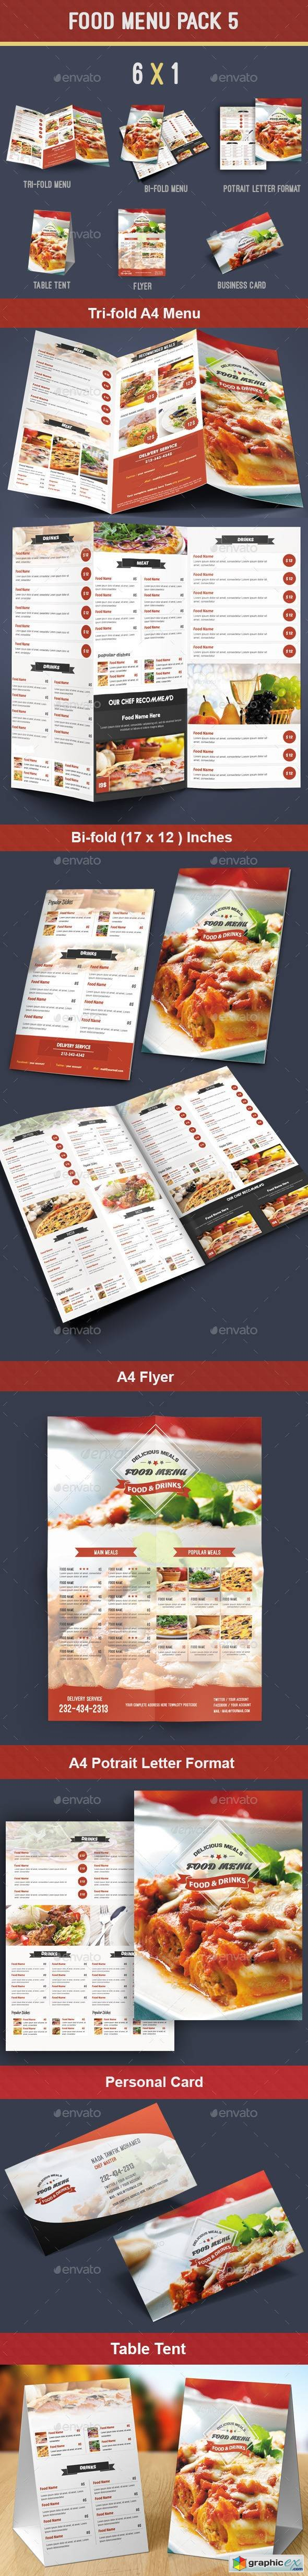 Food Menu Pack 5